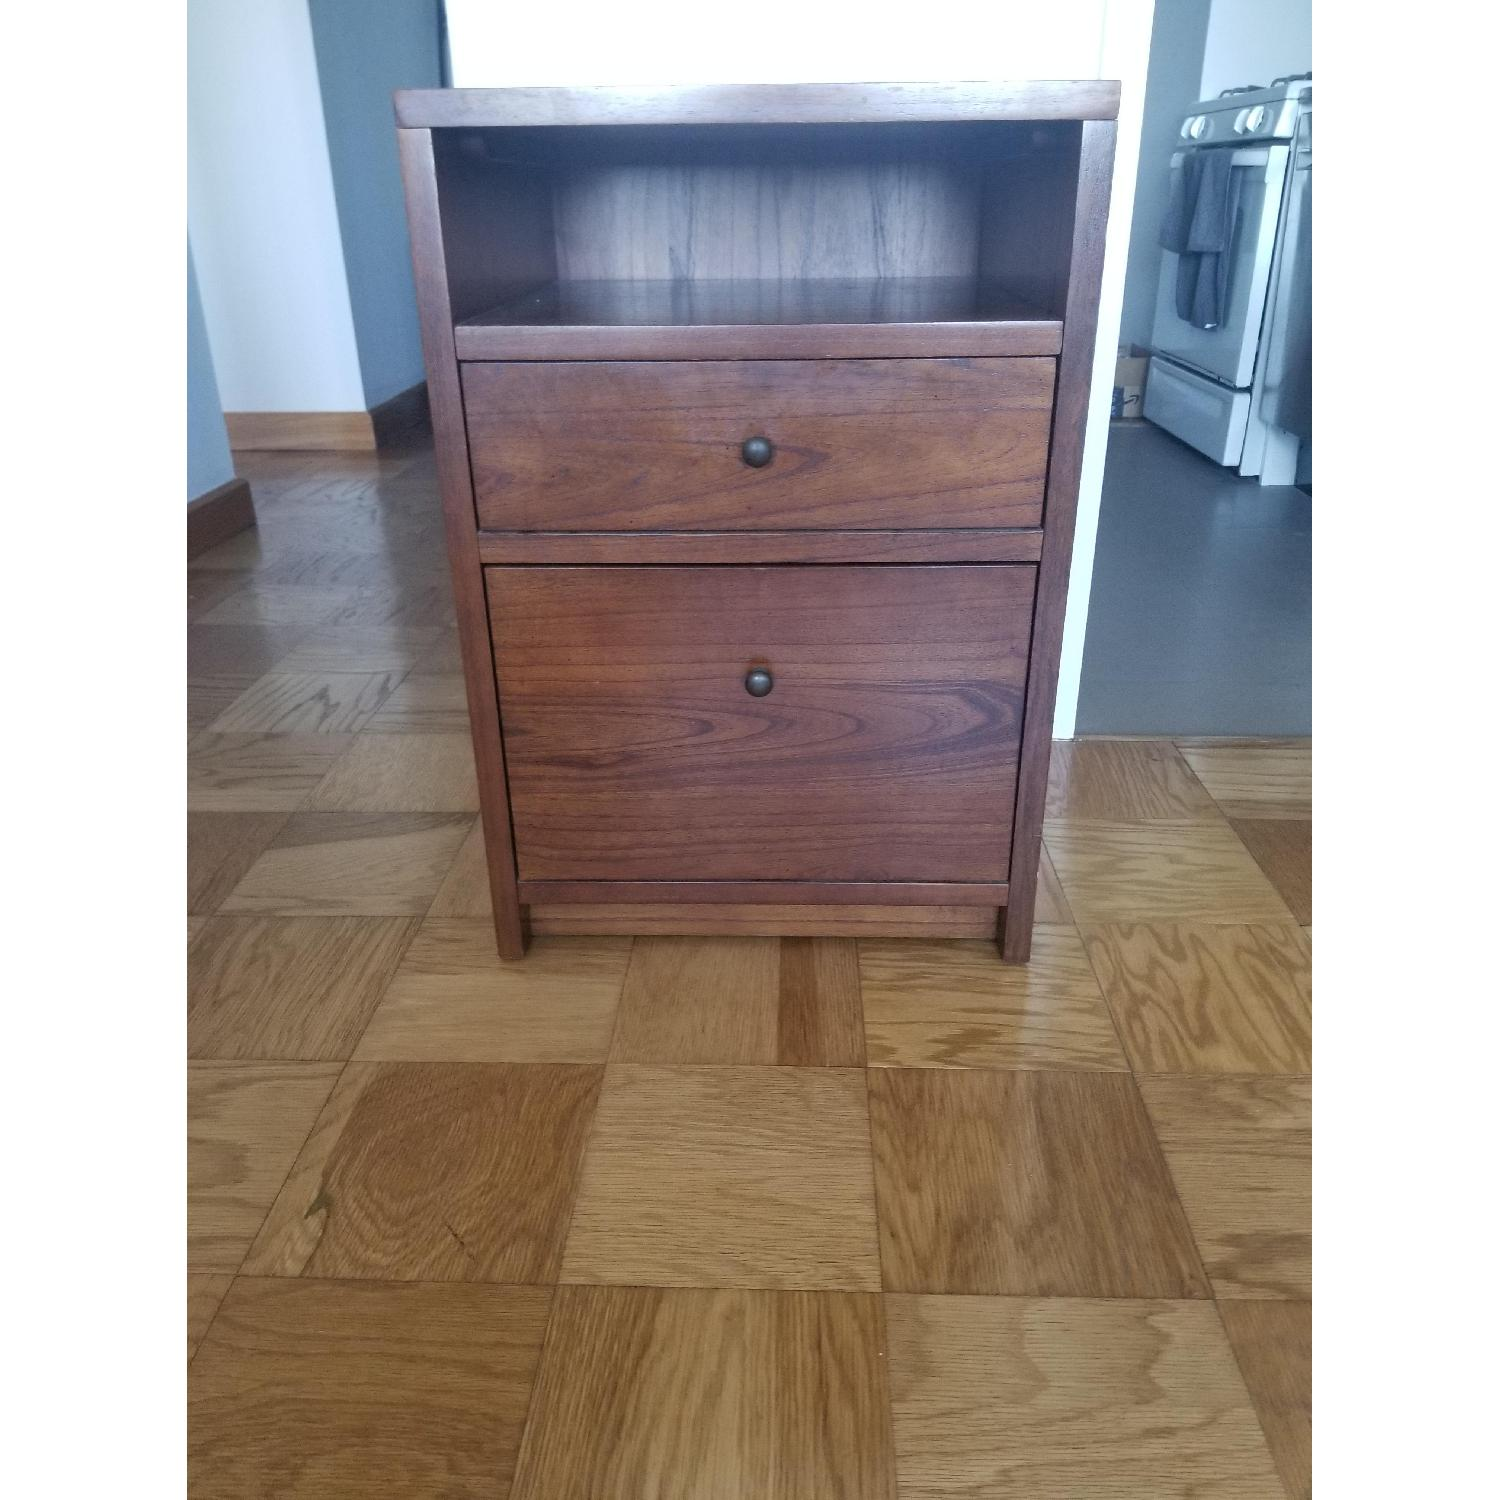 Pottery Barn Wood Filing Cabinet and Bedside Stand - image-1